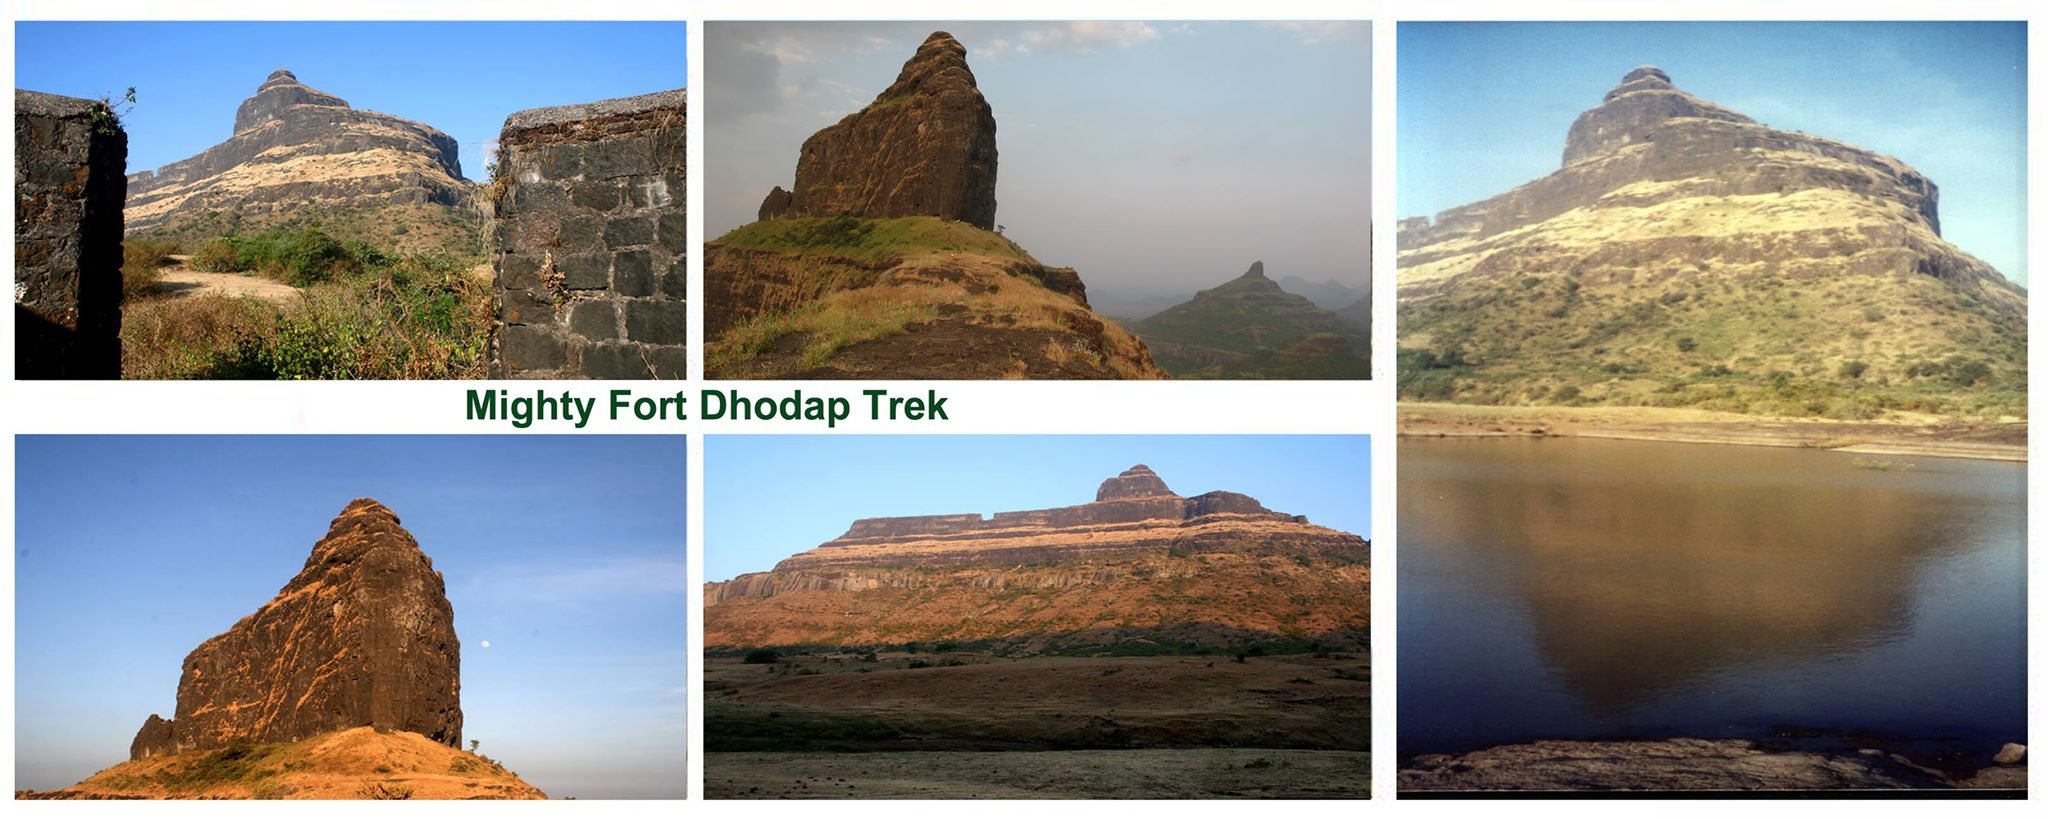 Book Online Tickets for  Mighty Fort Dhodap Trek, Pune. Fort Dhodap TrekAbout Fort:-Dhodap (Marathi: धोड़प), is one of the hill forts in Maharashtra state in India. Situated in Kalwan taluka in the Nashik district. the fort is 4829 ft (1472 mt) above sea level. It is the site of